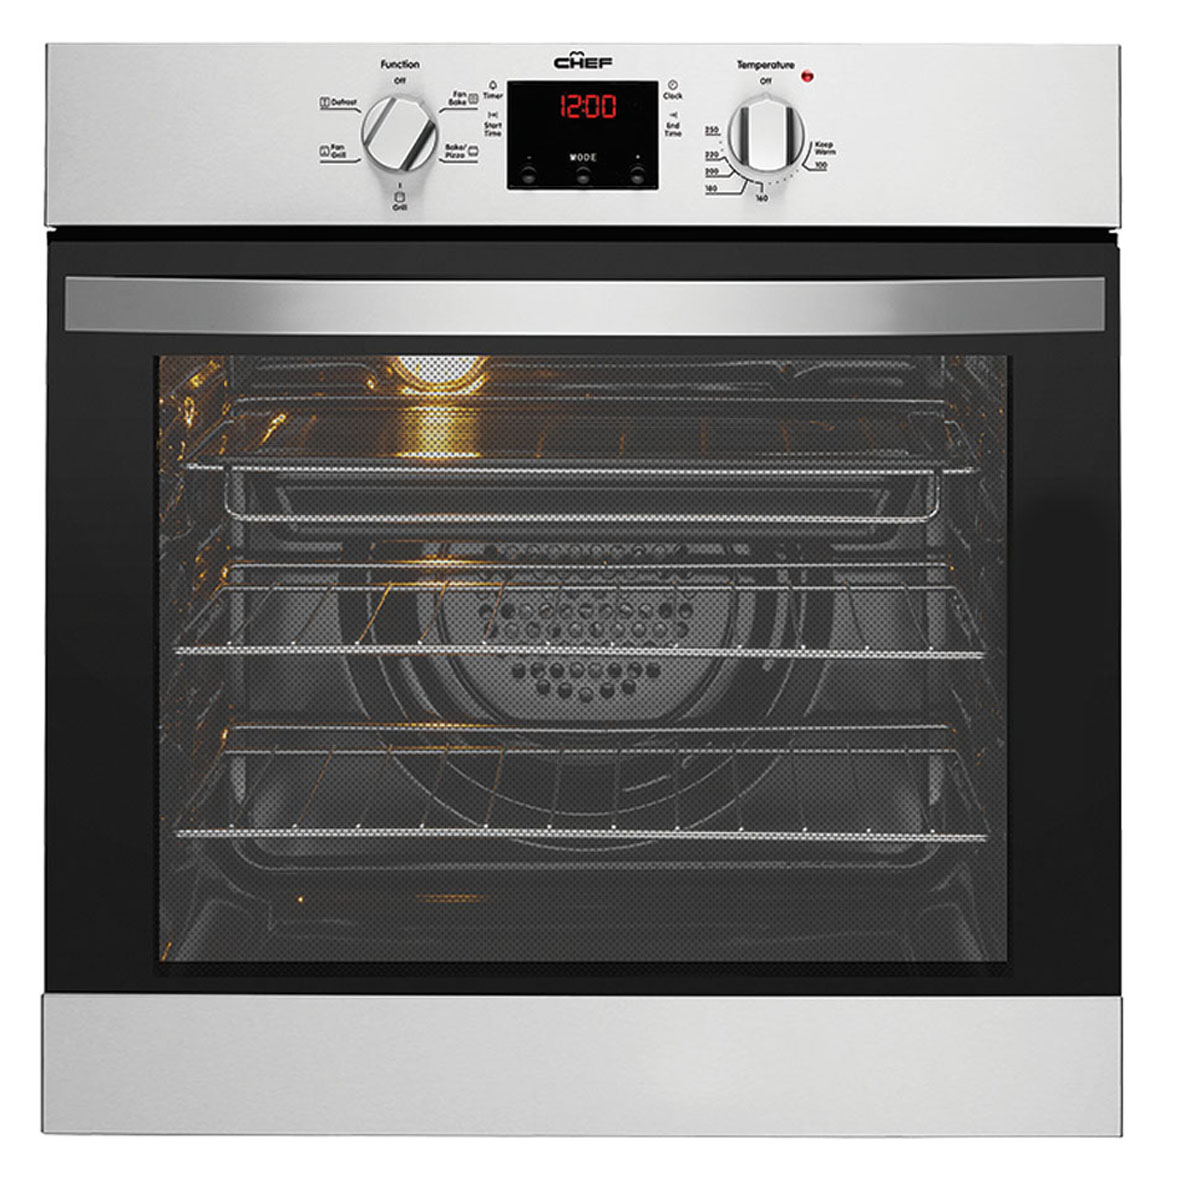 Chef CVE614SA 60cm Electric Built-In Single Oven 31713